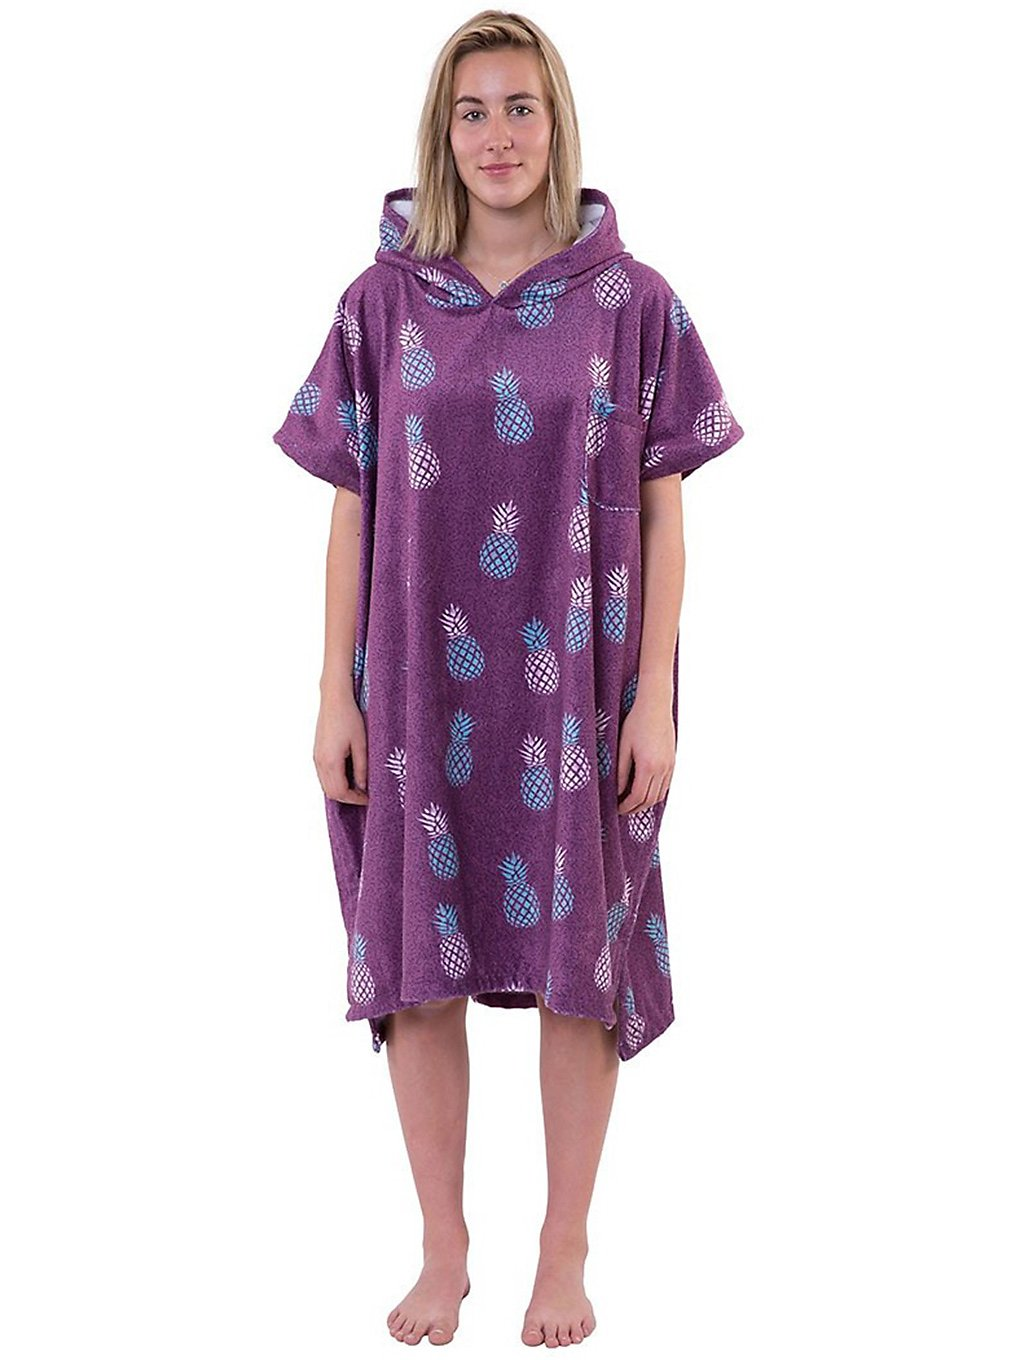 After Pineapple Surf Poncho purple